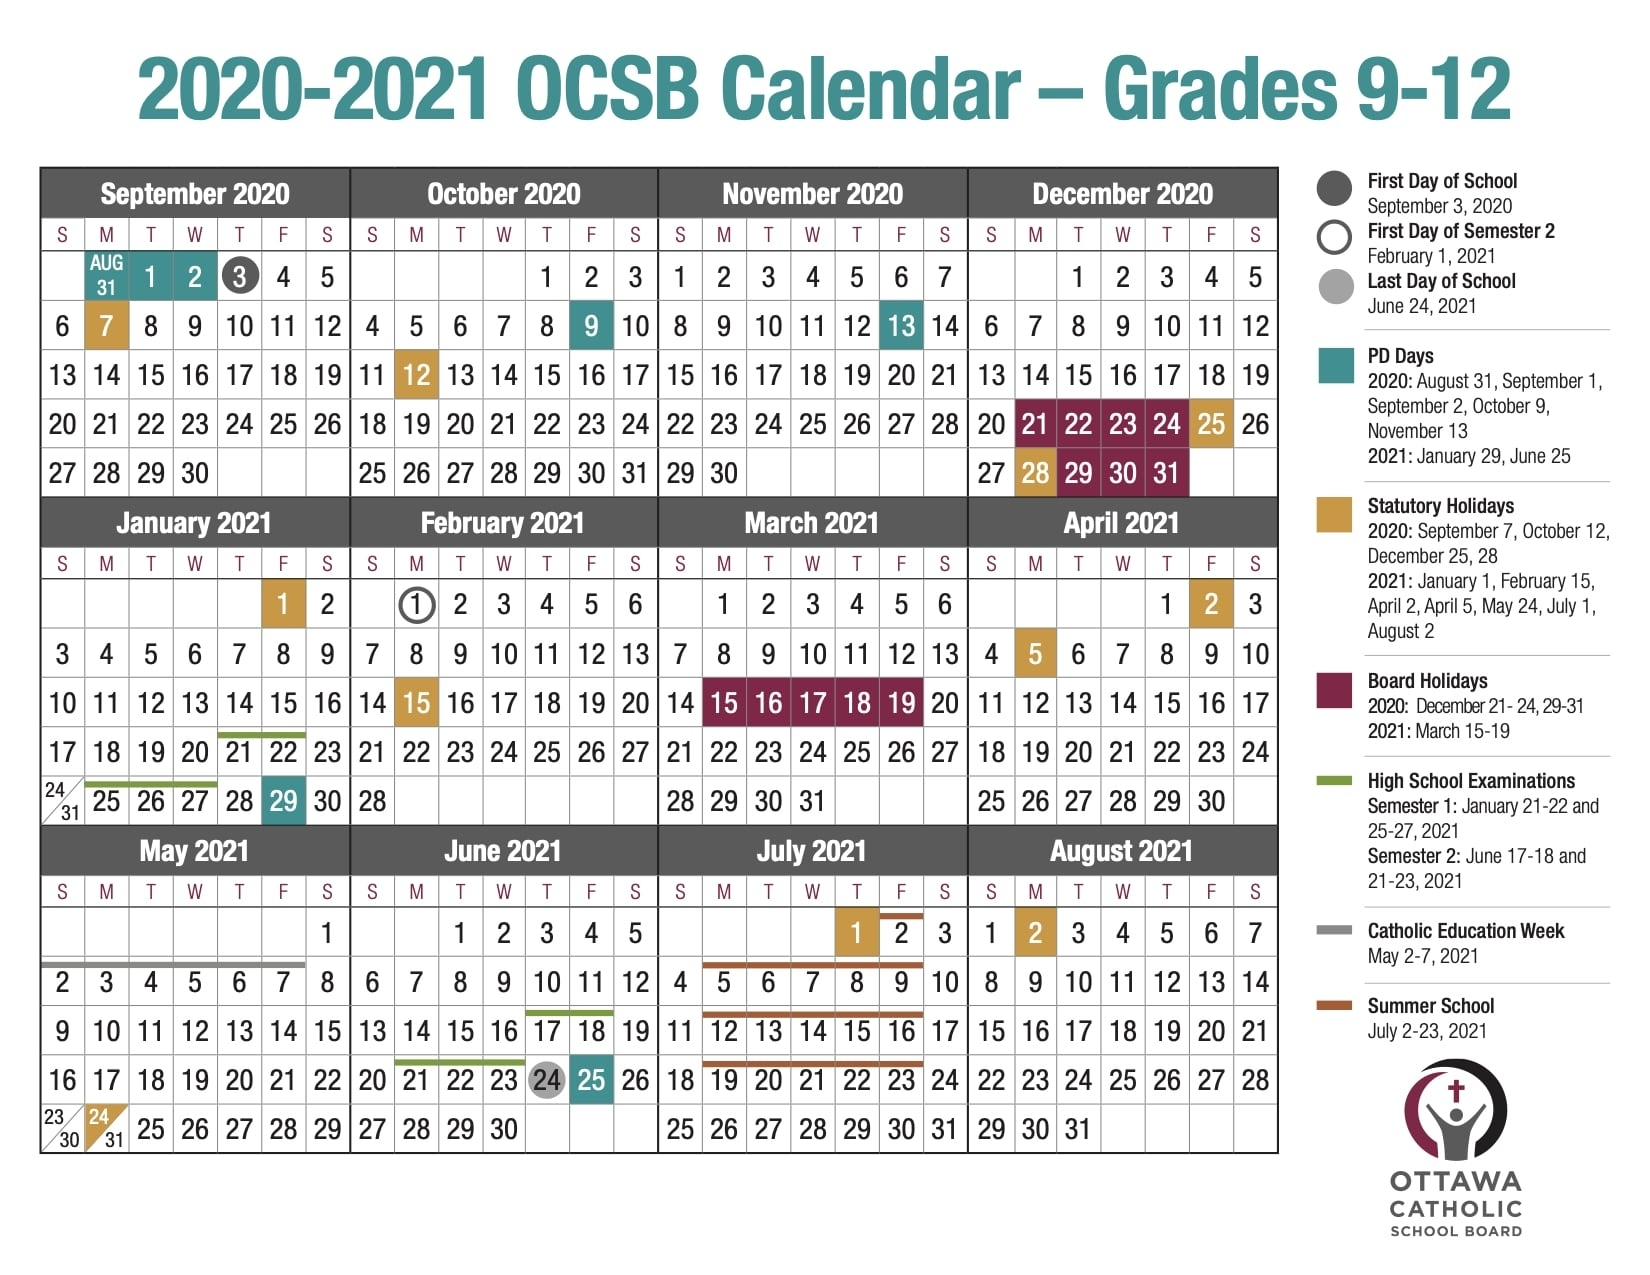 School Year Calendar From The Ocsb with How Many Days In Liturgical Calendar Compared To Regular Calendar